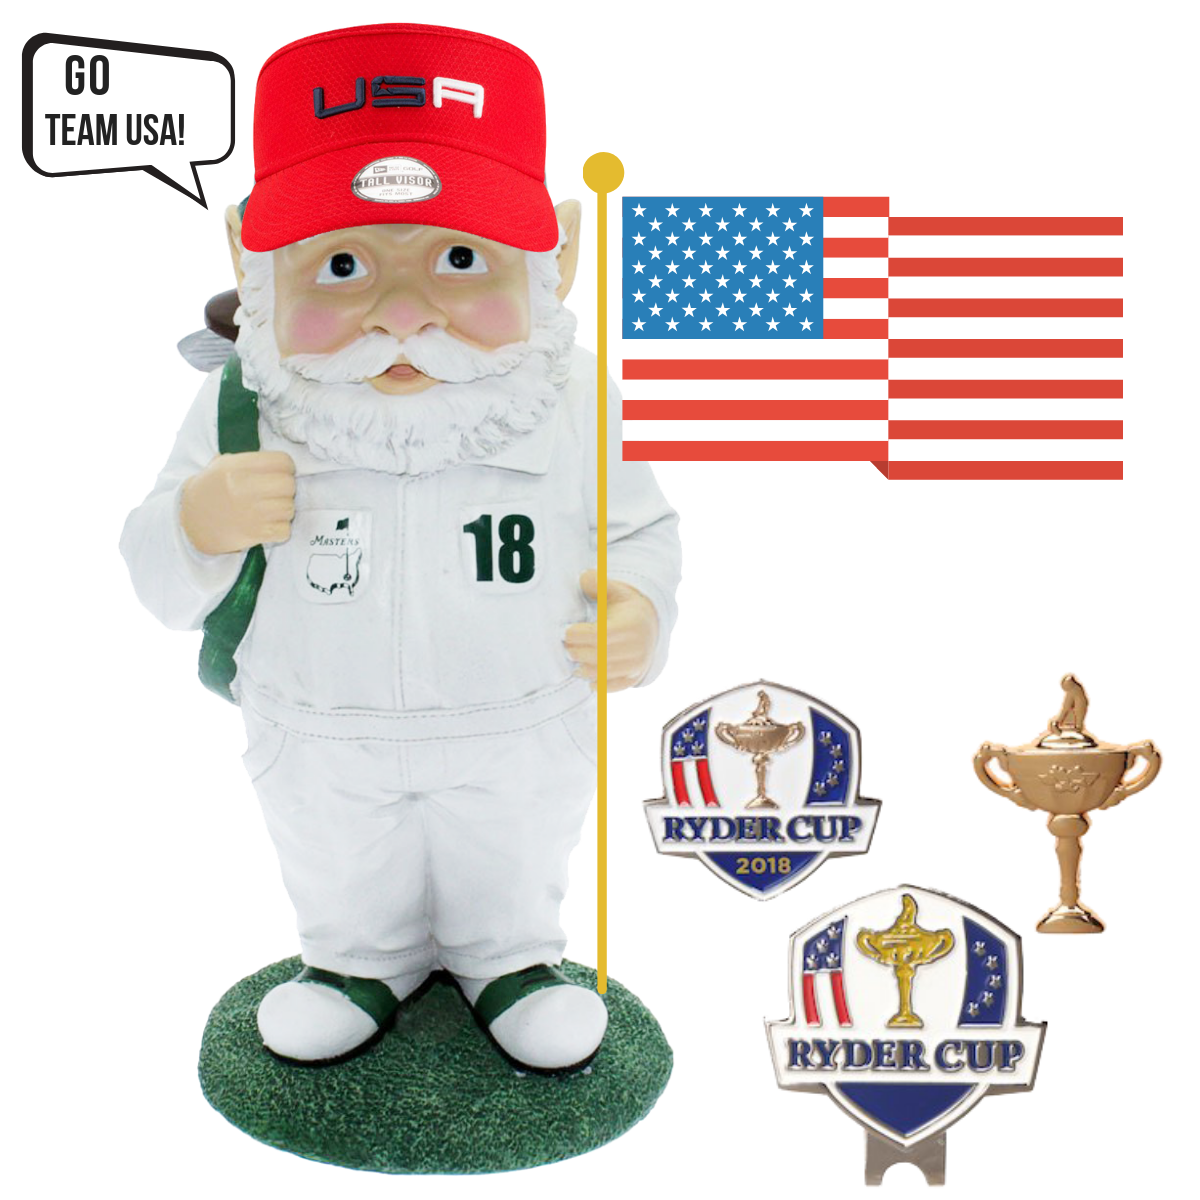 2018 Ryder Cup Merchandise and Apparel